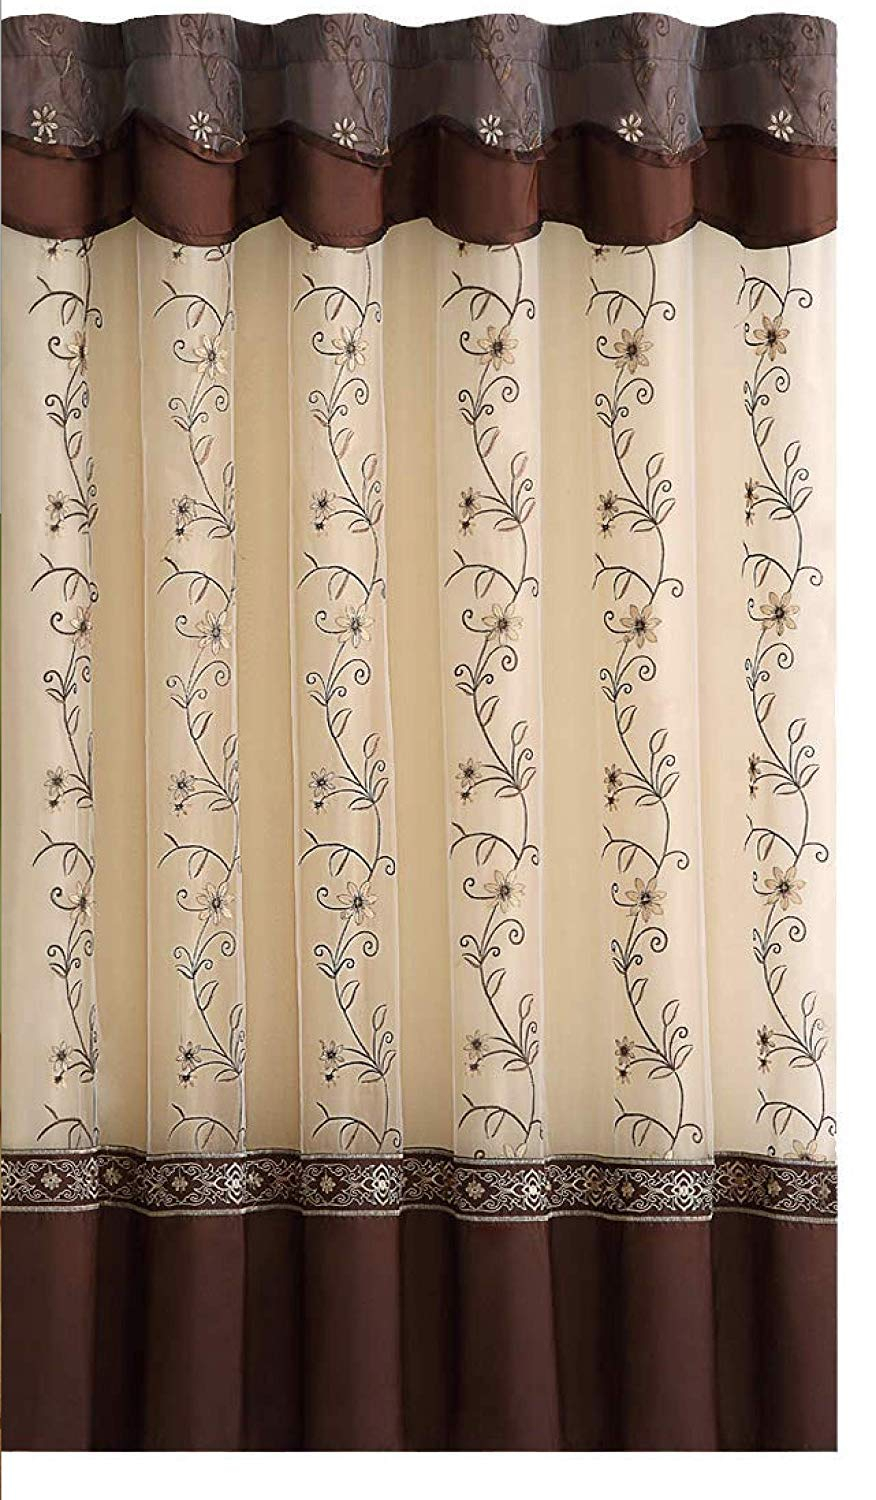 Cheap Sheer Embroidered, Find Sheer Embroidered Deals On Regarding Wavy Leaves Embroidered Sheer Extra Wide Grommet Curtain Panels (View 18 of 30)